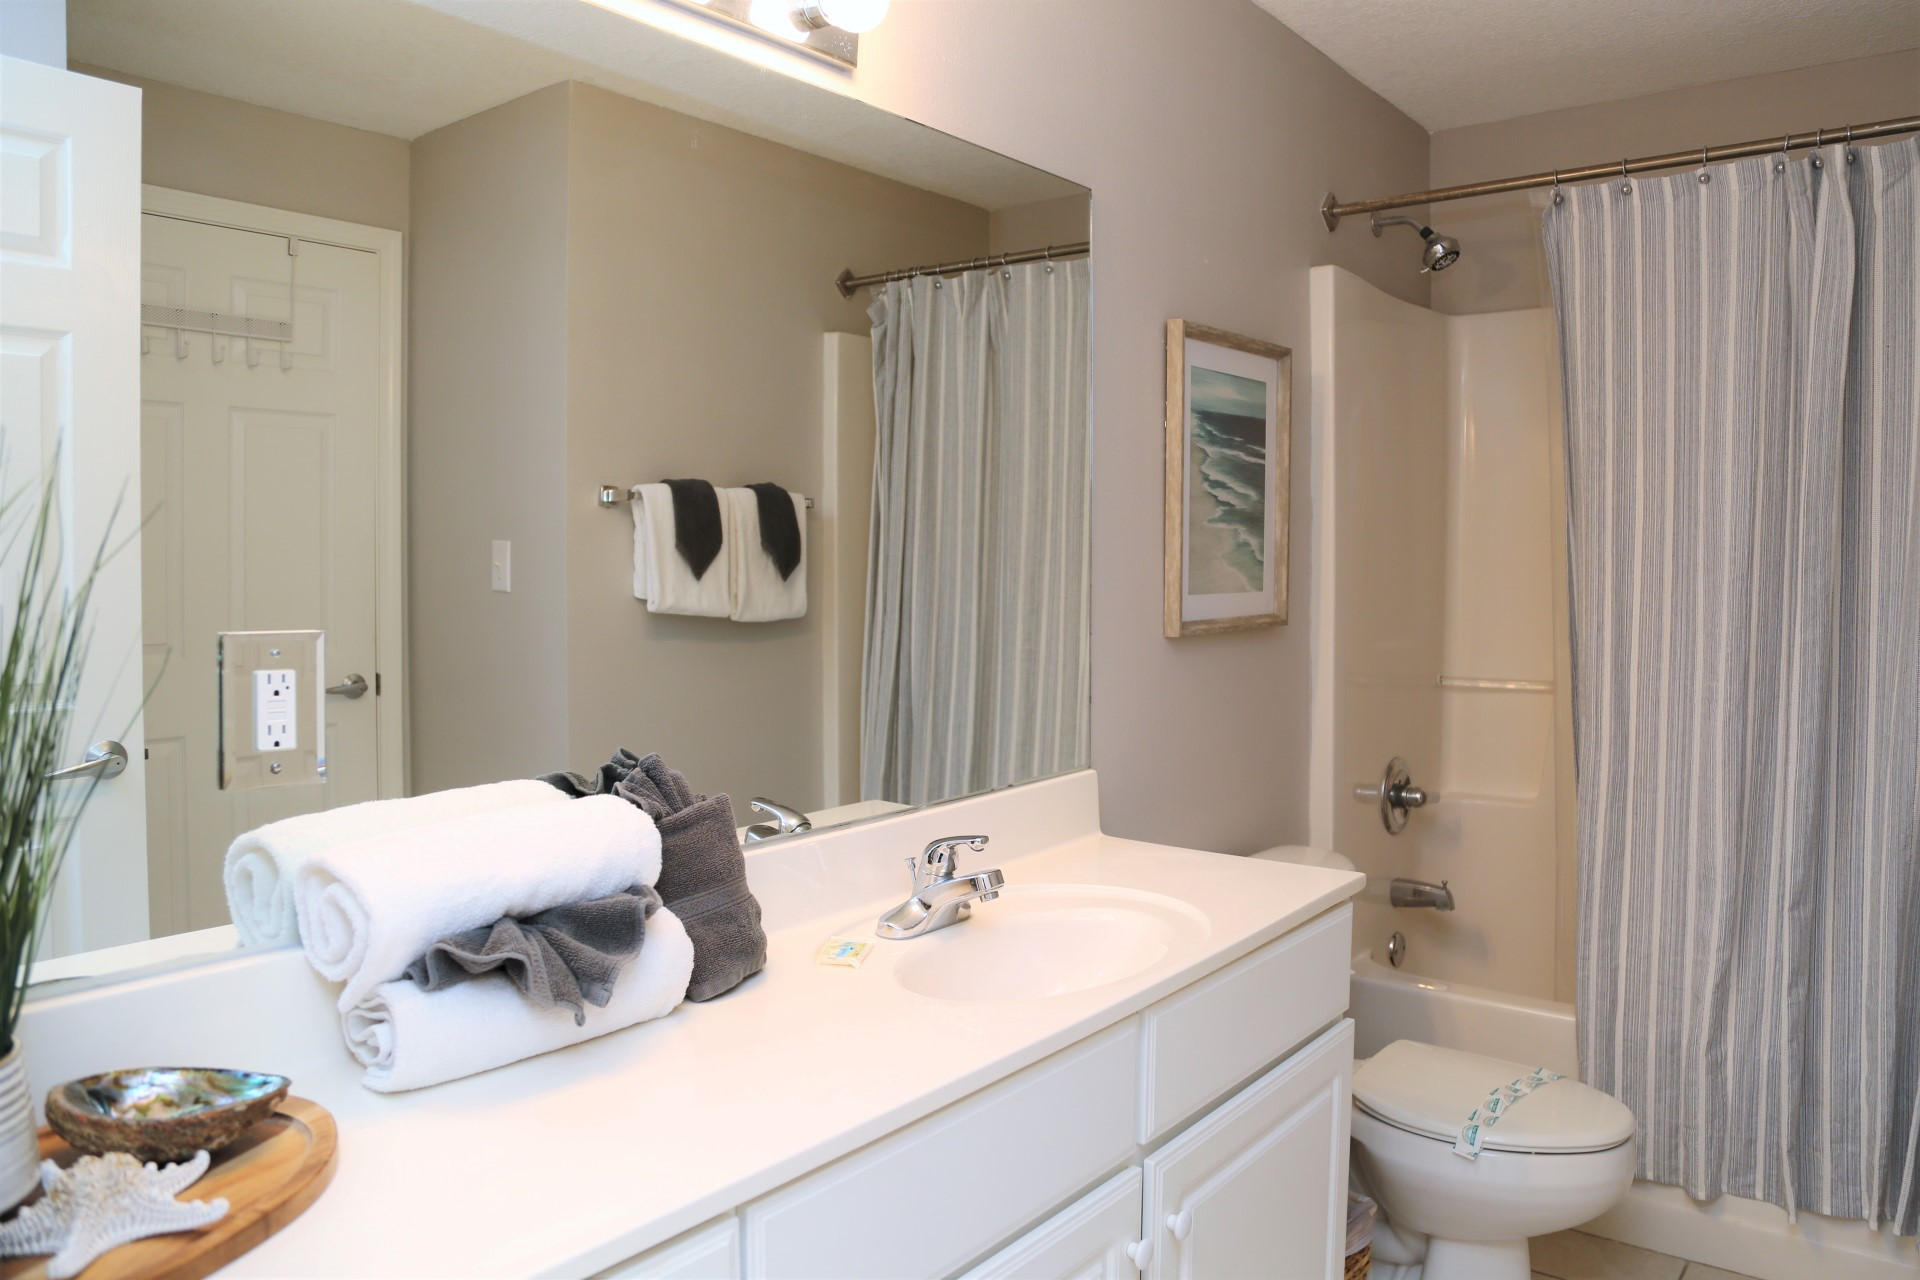 The second bathroom includes a shower/tub combo and can be a